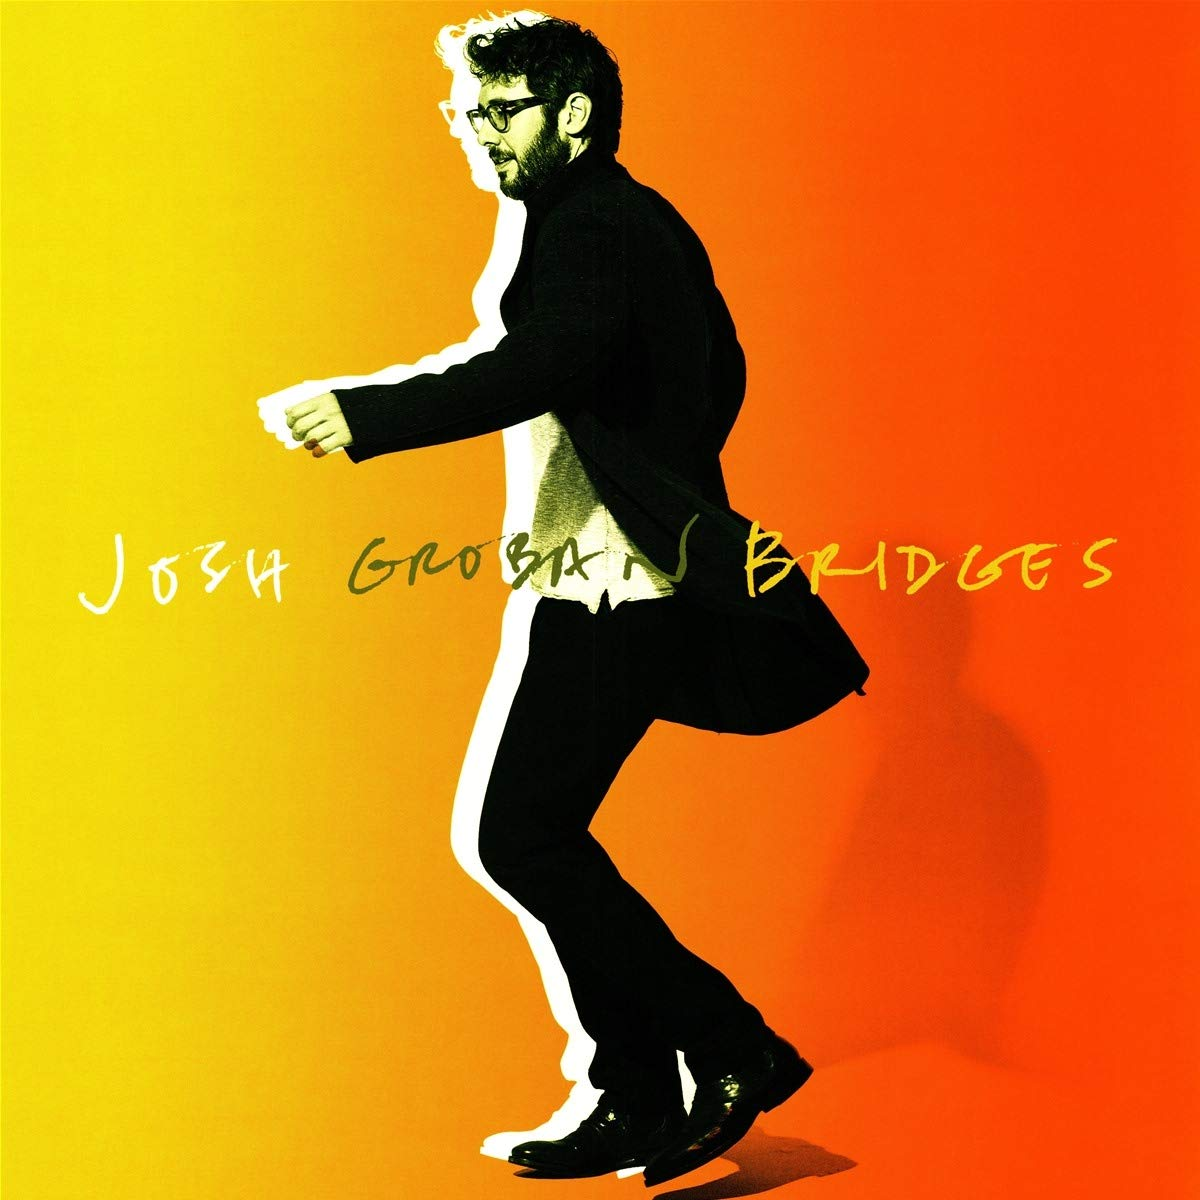 Vinilo : Josh Groban - Bridges (LP Vinyl)